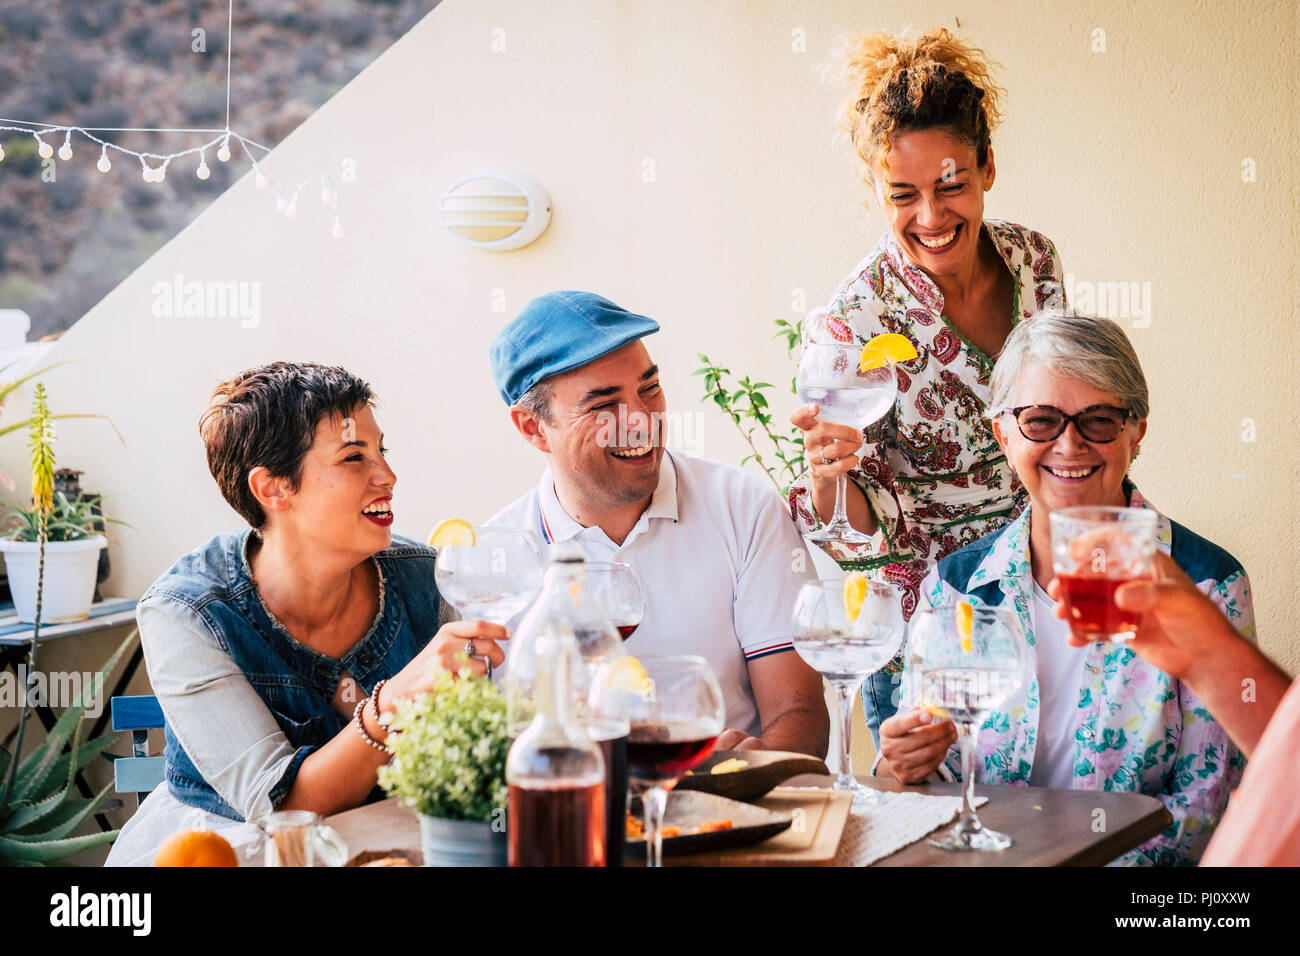 group of adults mixed ages from 40 to 80 celebrate together at home in the terrace with food and wine. friendship together people concept having fun a - Stock Image